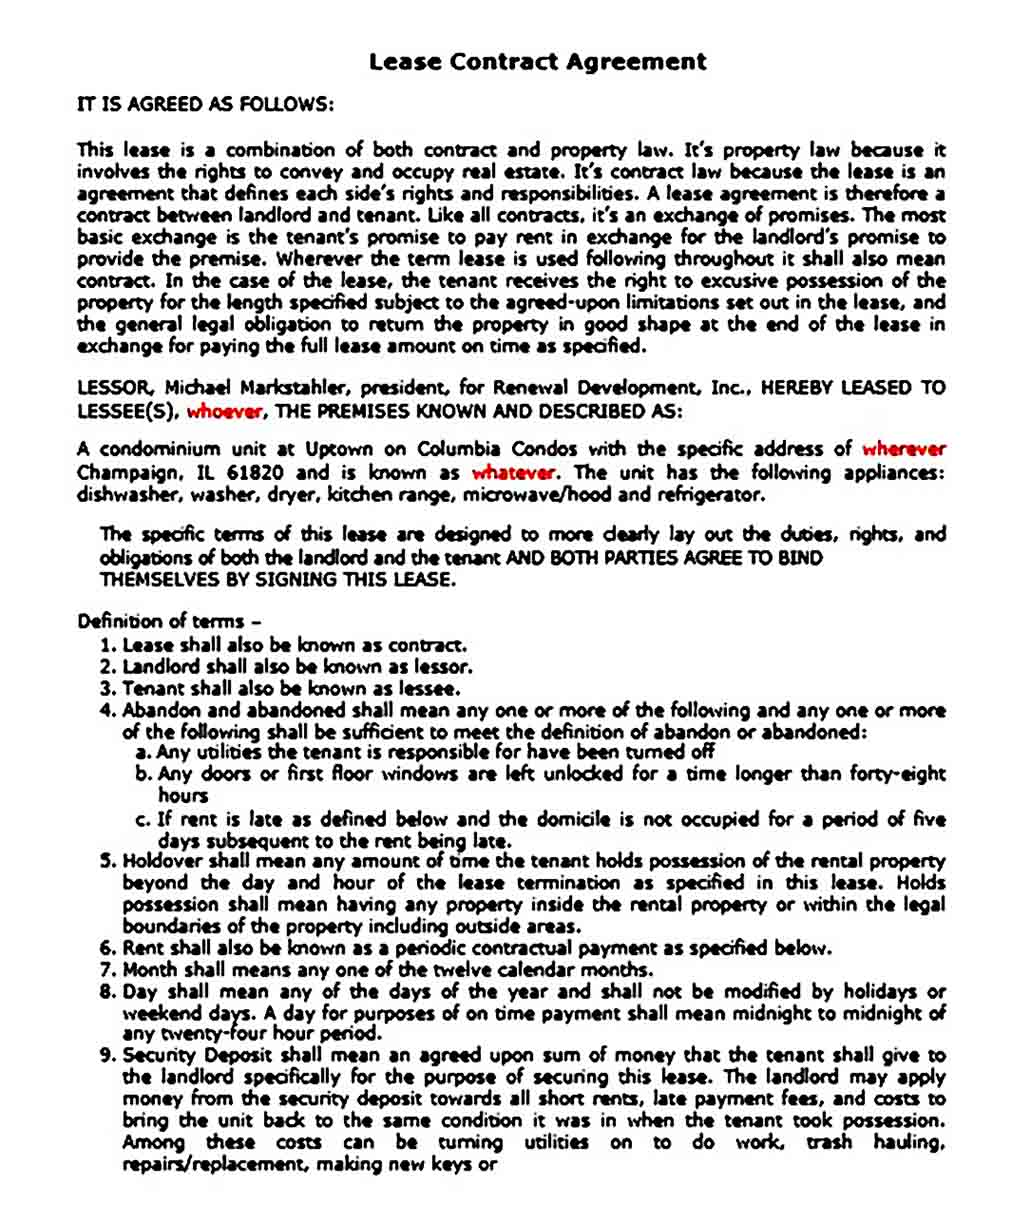 Lease Contract Agreement